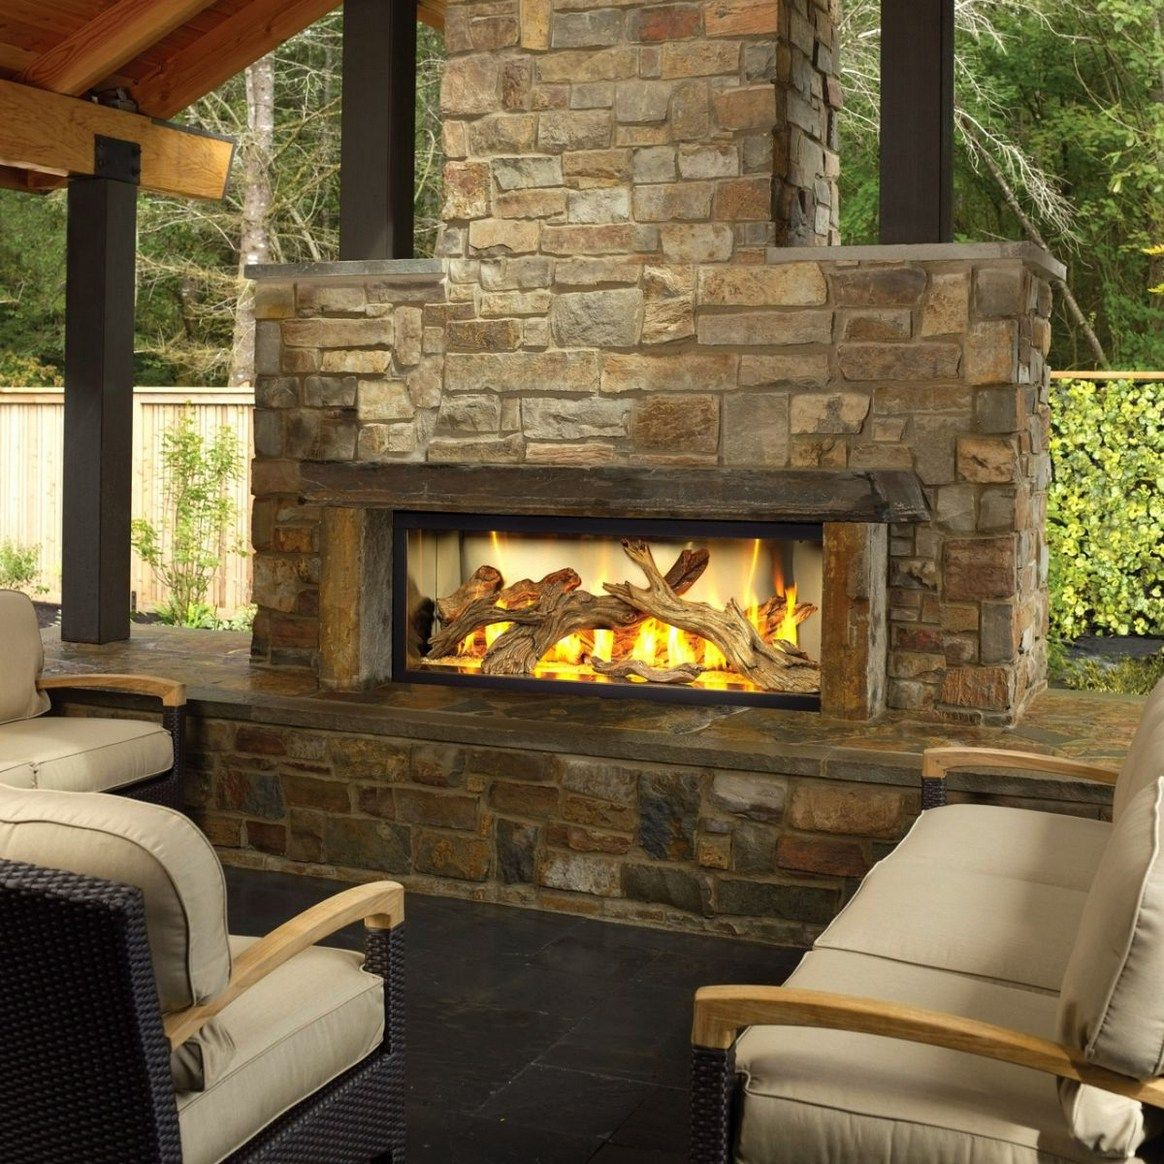 Gas Stone Fireplace luxury outdoor chat area massive stone faced outdoor gas fireplace